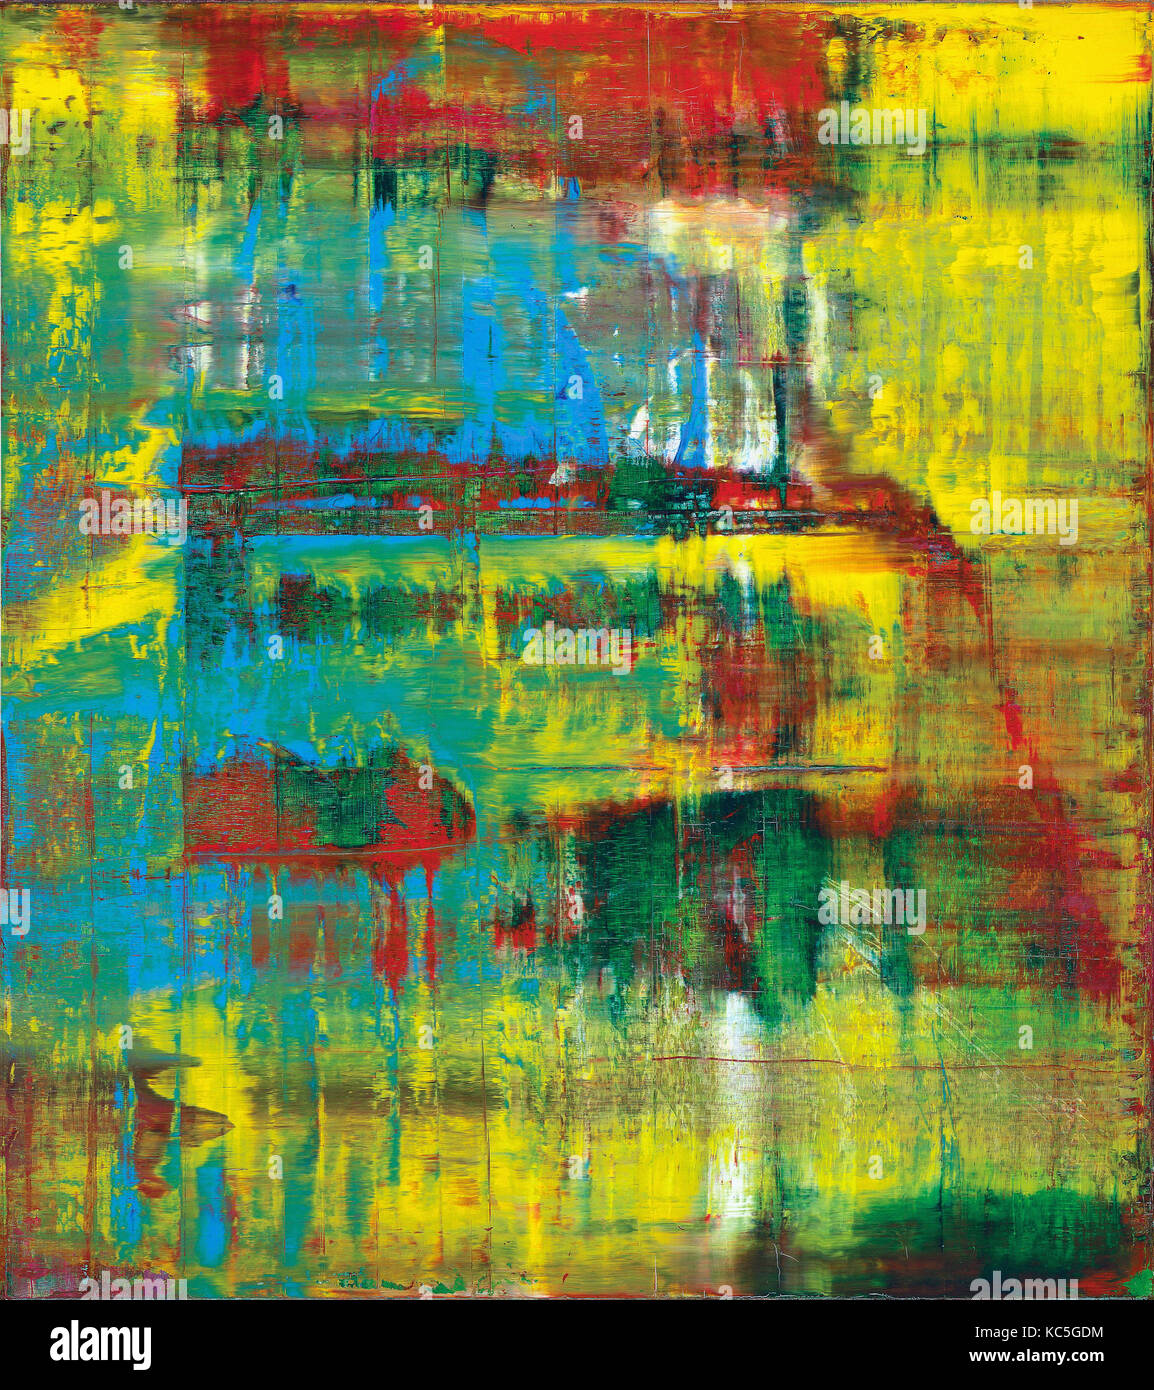 Abstraktes Bild Gerhard Richter High Resolution Stock Photography And Images Alamy